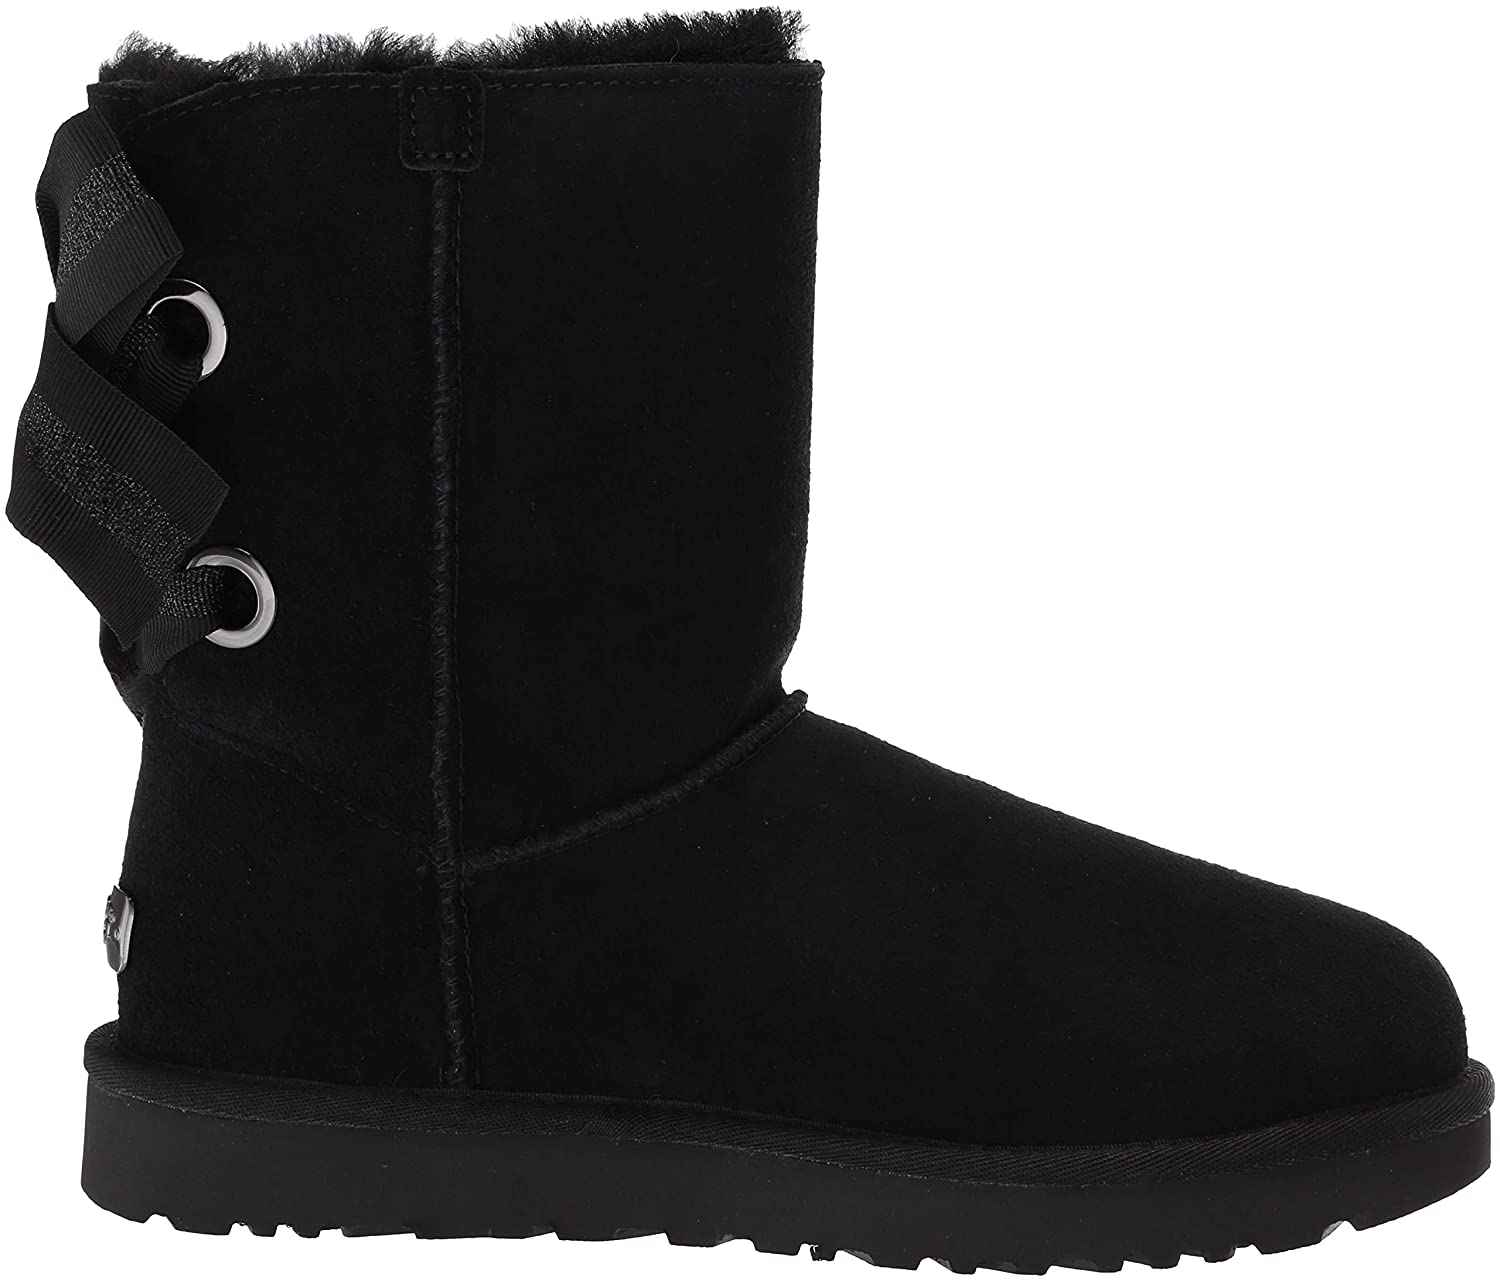 a86fcc459 Amazon.com | UGG Women's W Customizable Bailey Bow Short Fashion Boot |  Ankle & Bootie